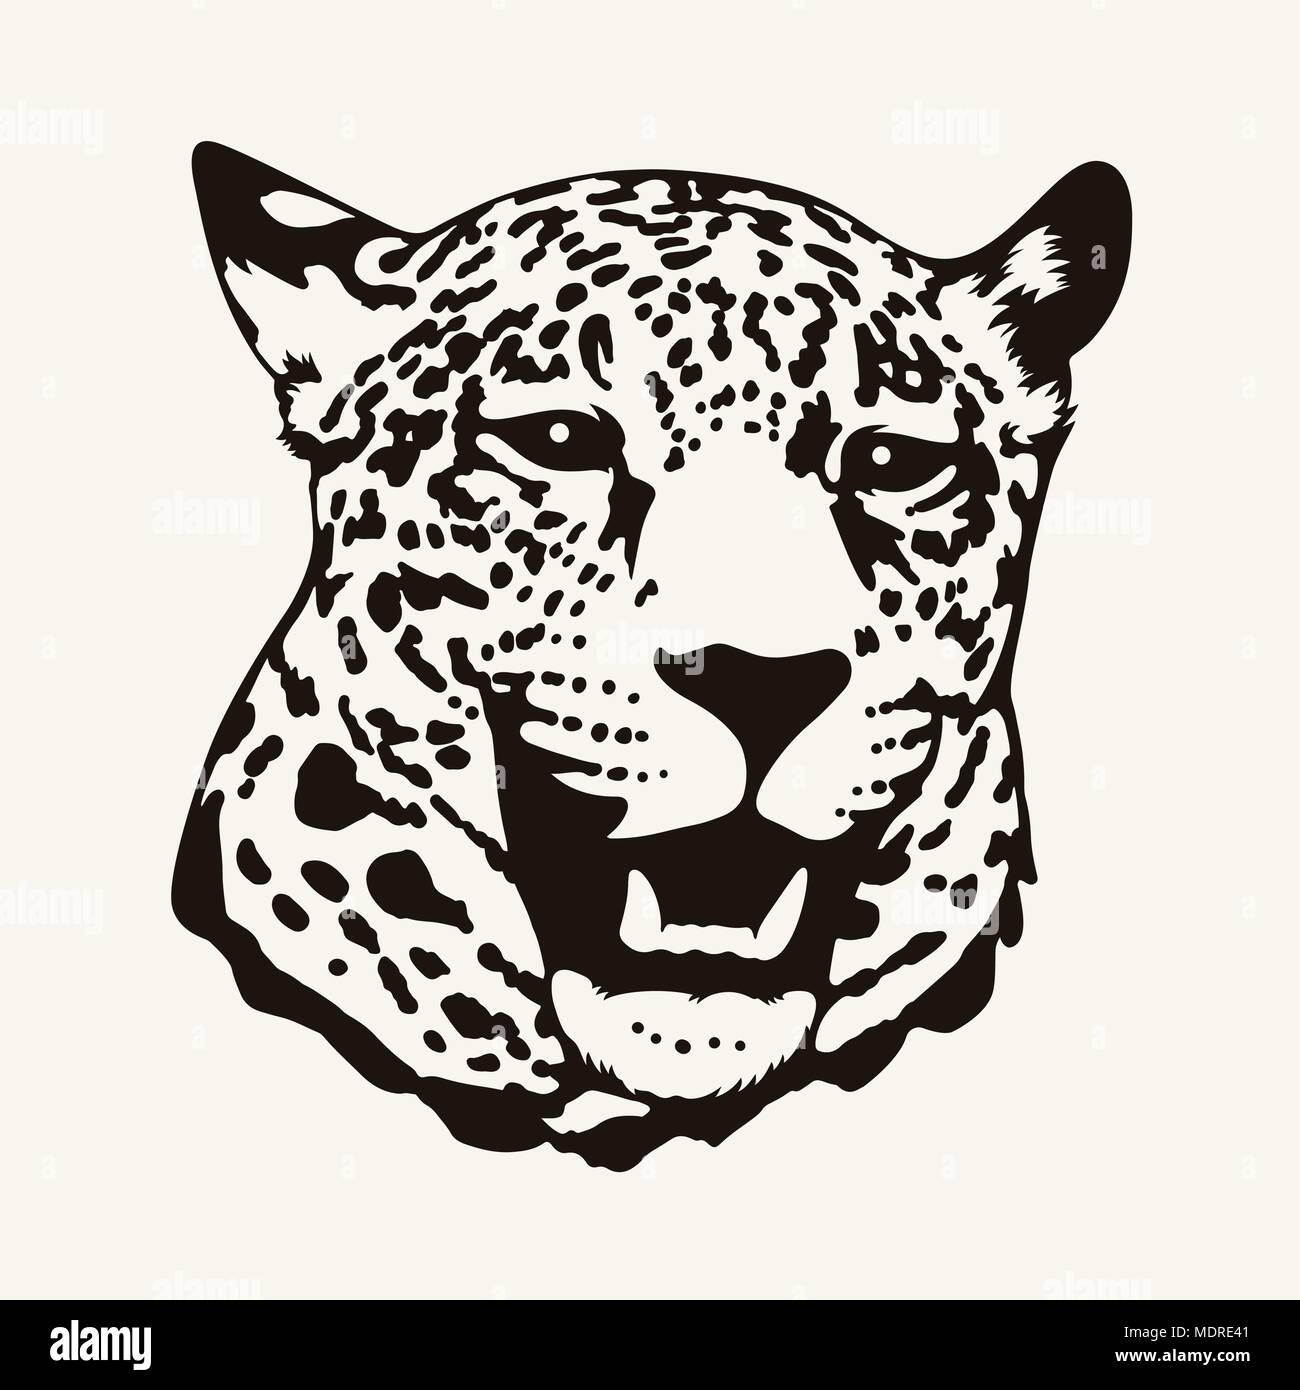 Vector illustration of a leopard head in one color. T-shirt design - Stock Image